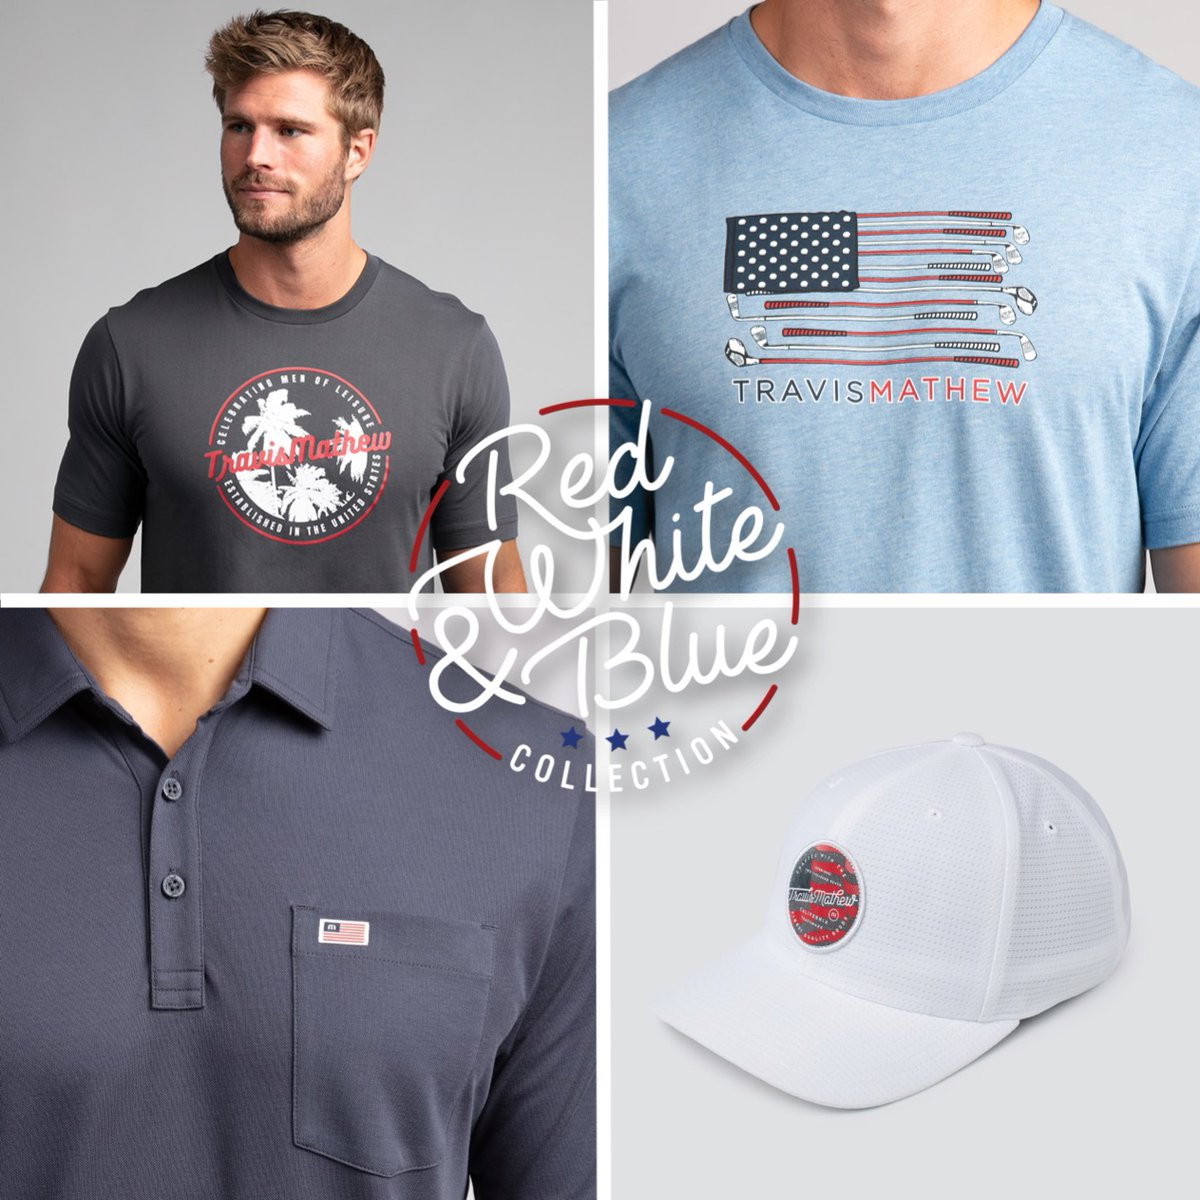 COMPETITION TIME MAJOR golf is back! To celebrate @pgachampionship week, we're giving you the chance to win a selection of our #RedWhiteAndBlue Collection.   Simply RT & FOLLOW your chance to win.  #travismathew #workandplay pic.twitter.com/j2EojggRLT